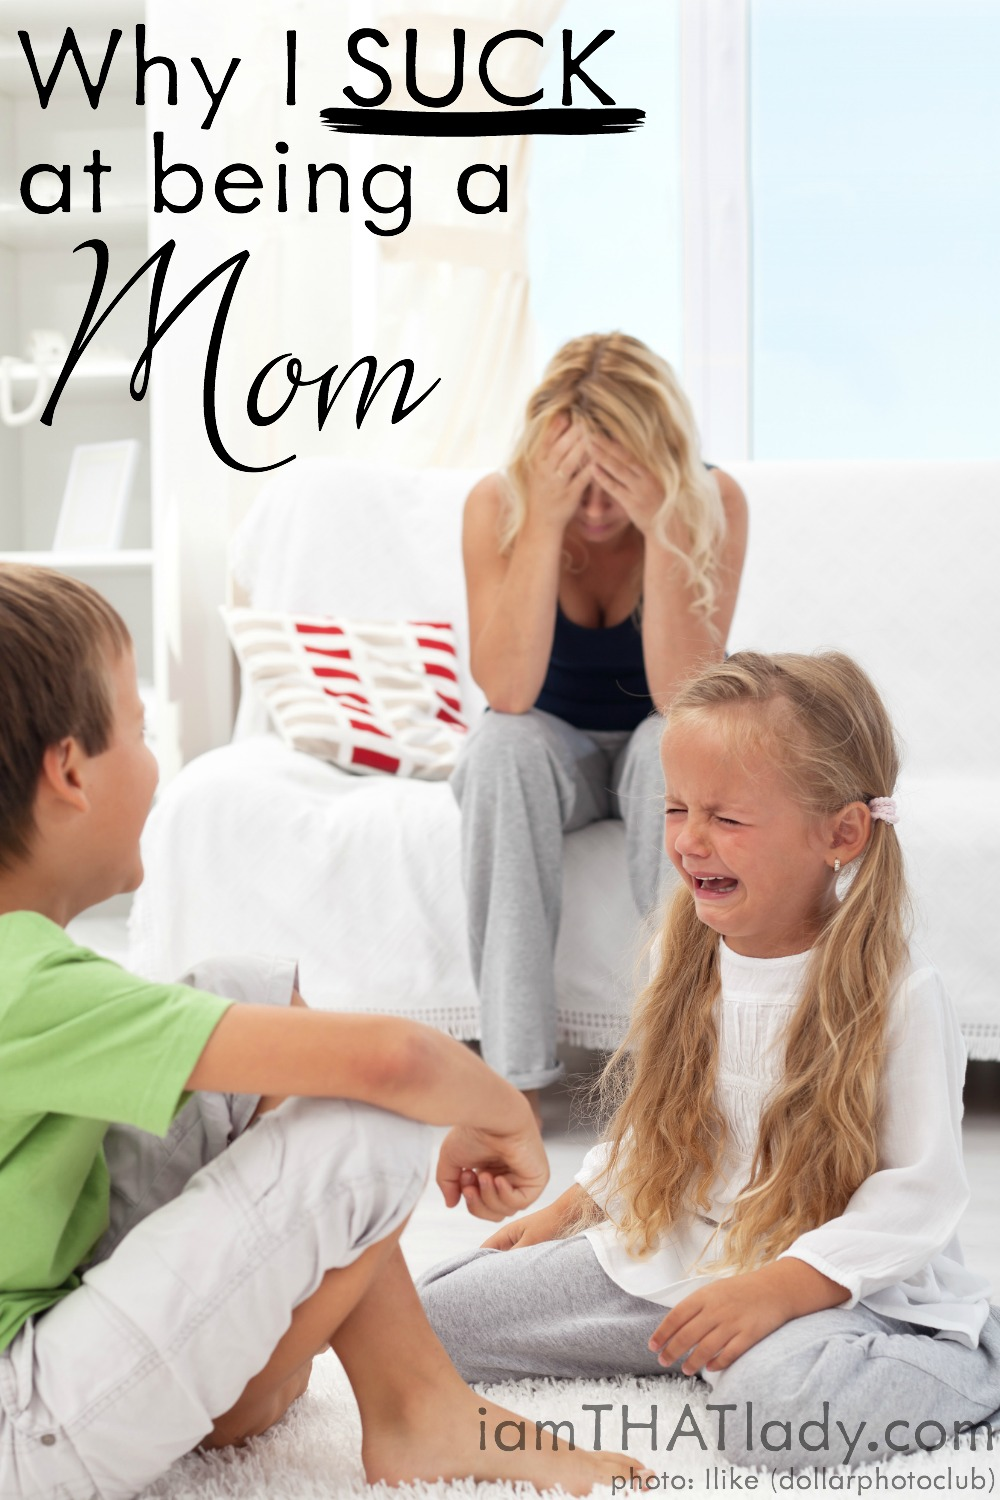 Why I suck at being a mom Pinterest